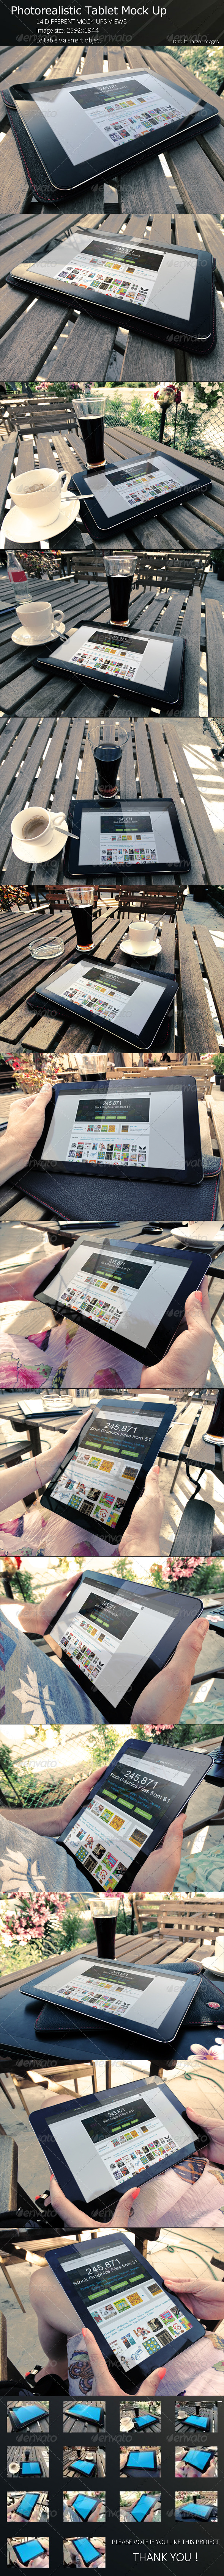 GraphicRiver PhotoRealistic Tablet Mock Up 8191800